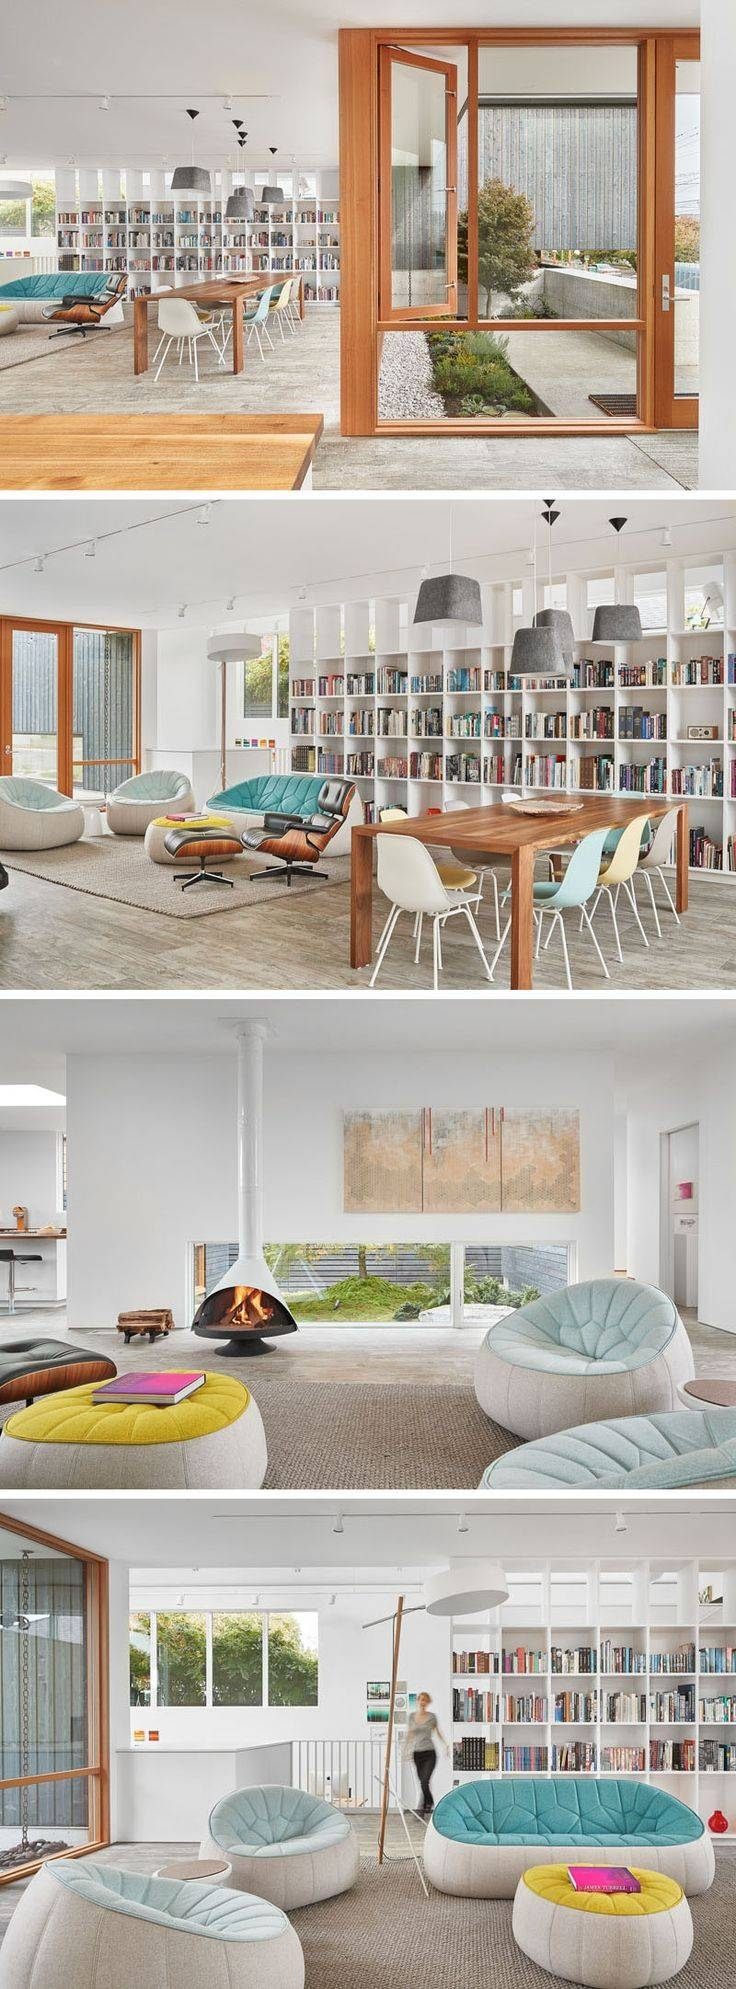 Best 25+ Comfortable Sofa Ideas On Pinterest | Modular Living Room with Comfortable Sofas and Chairs (Image 3 of 30)